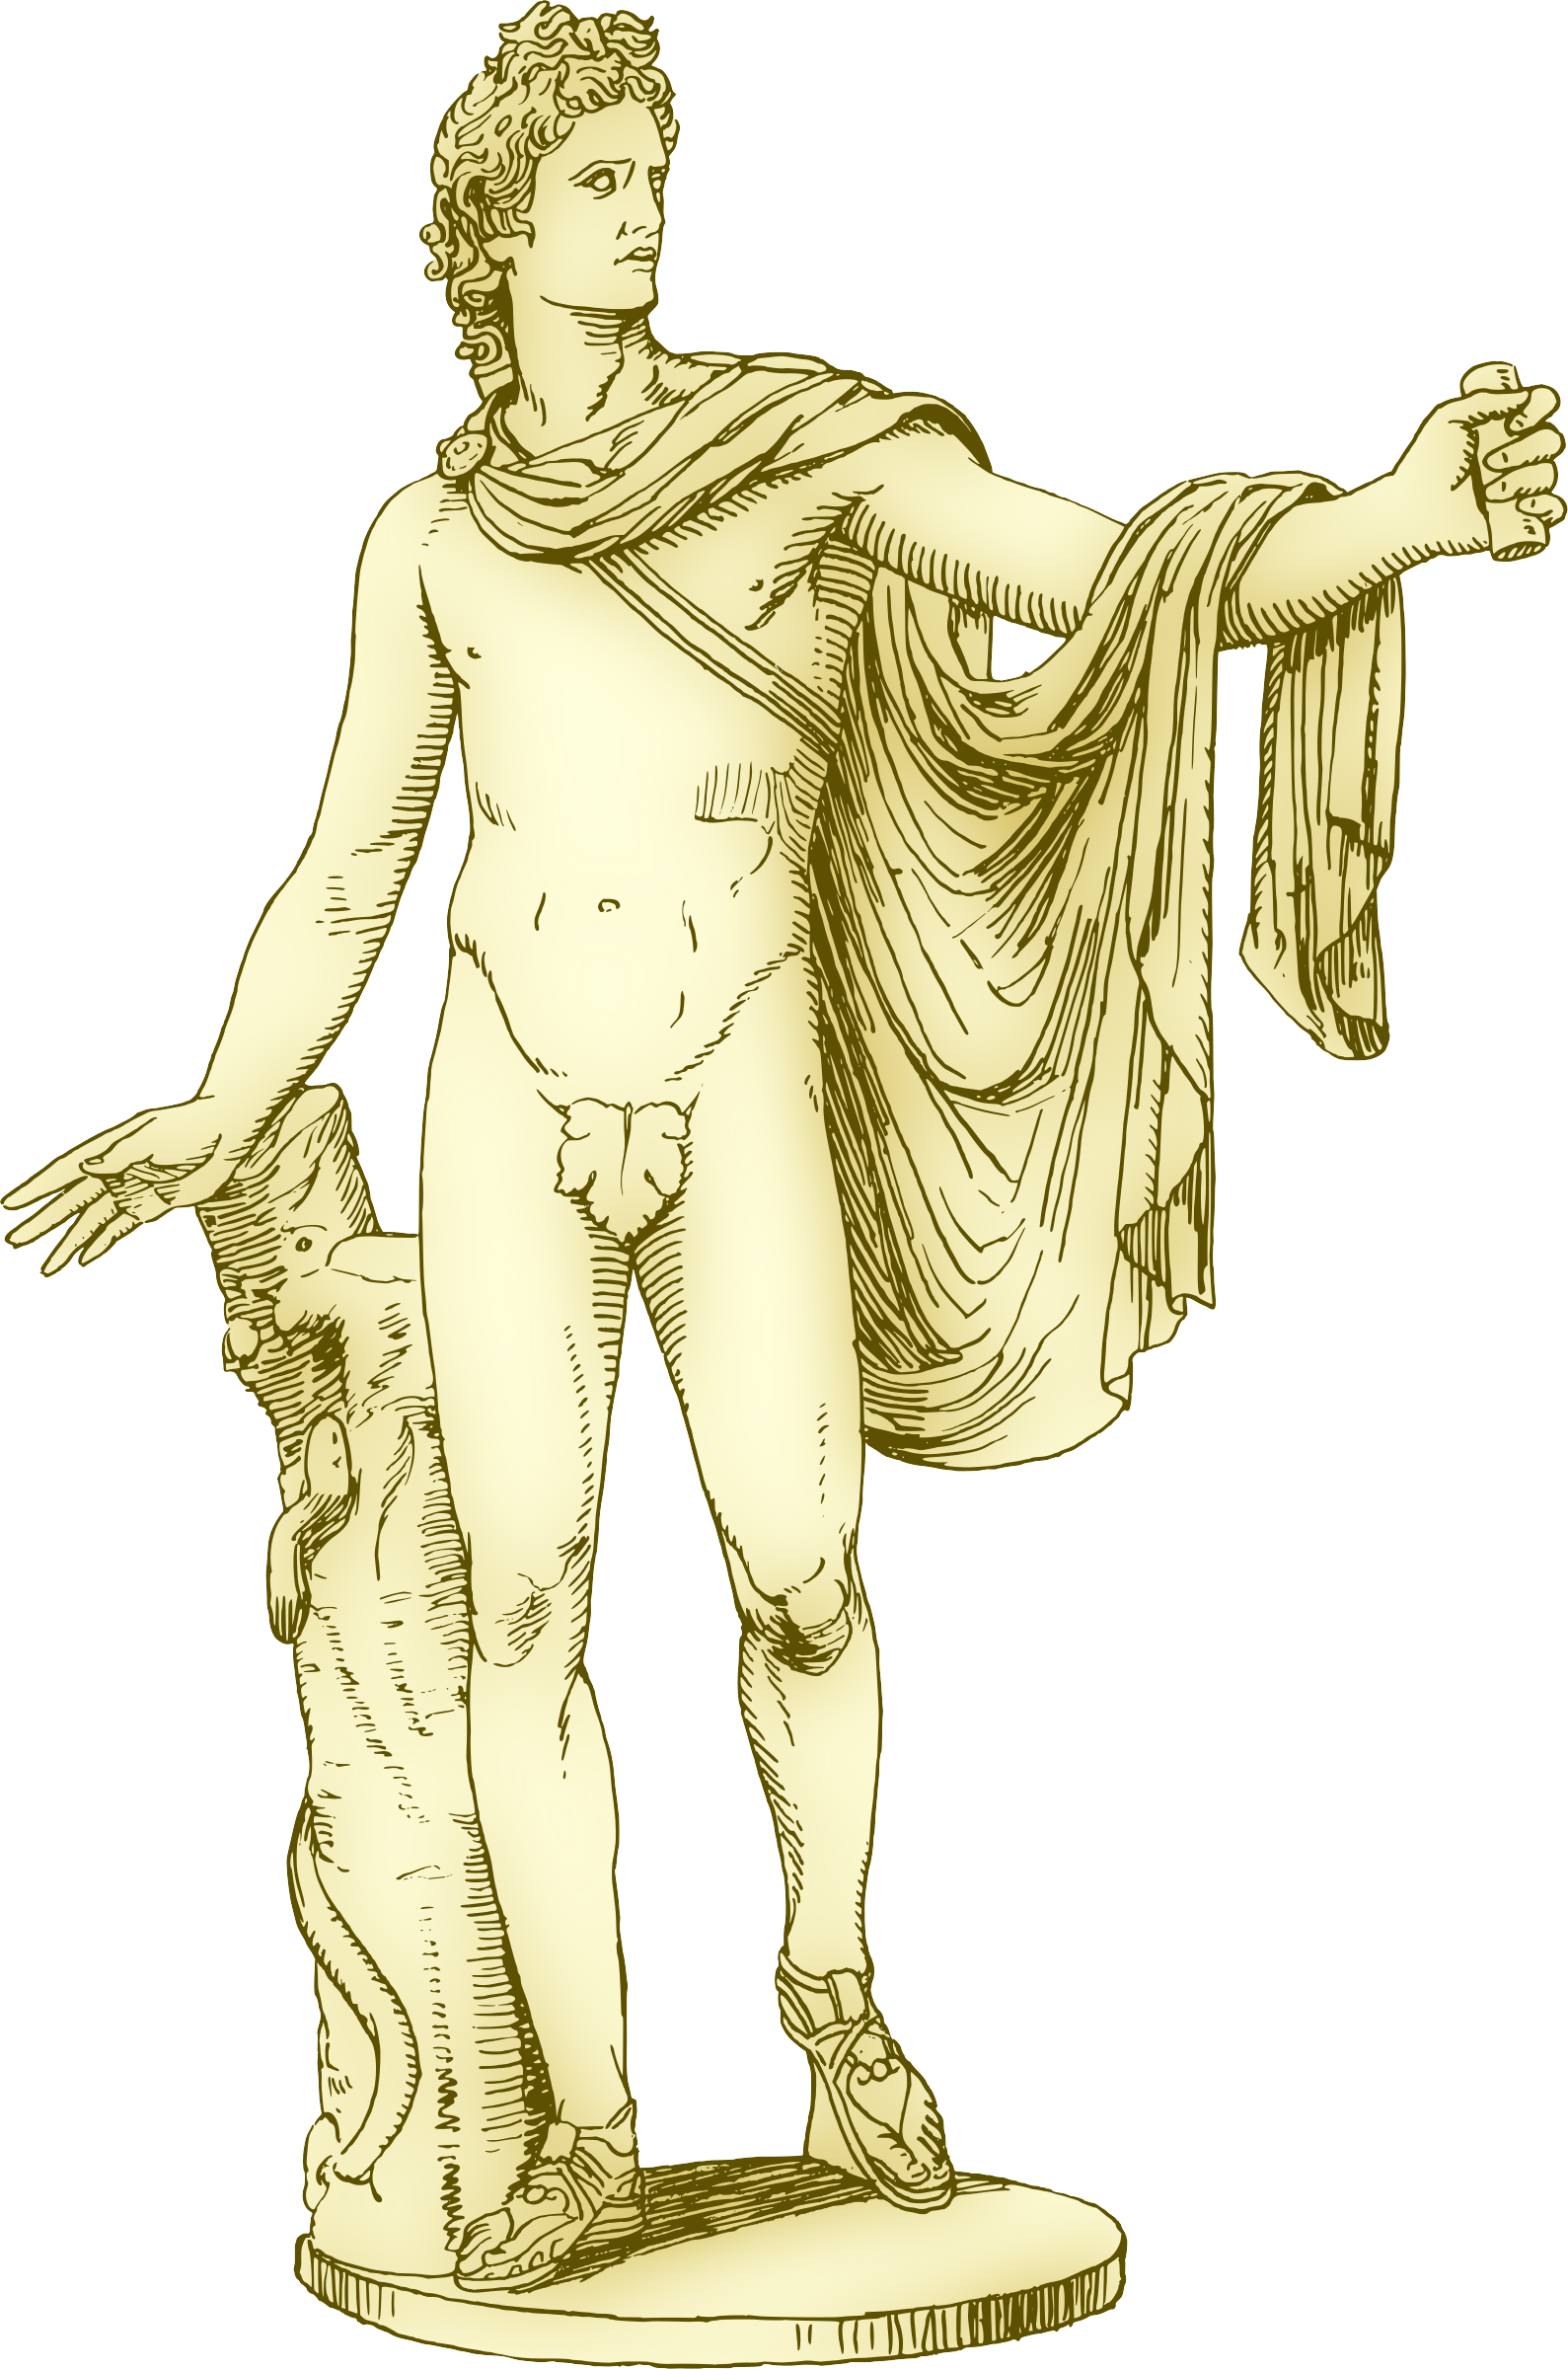 Apollo (marble statue) by Firkin